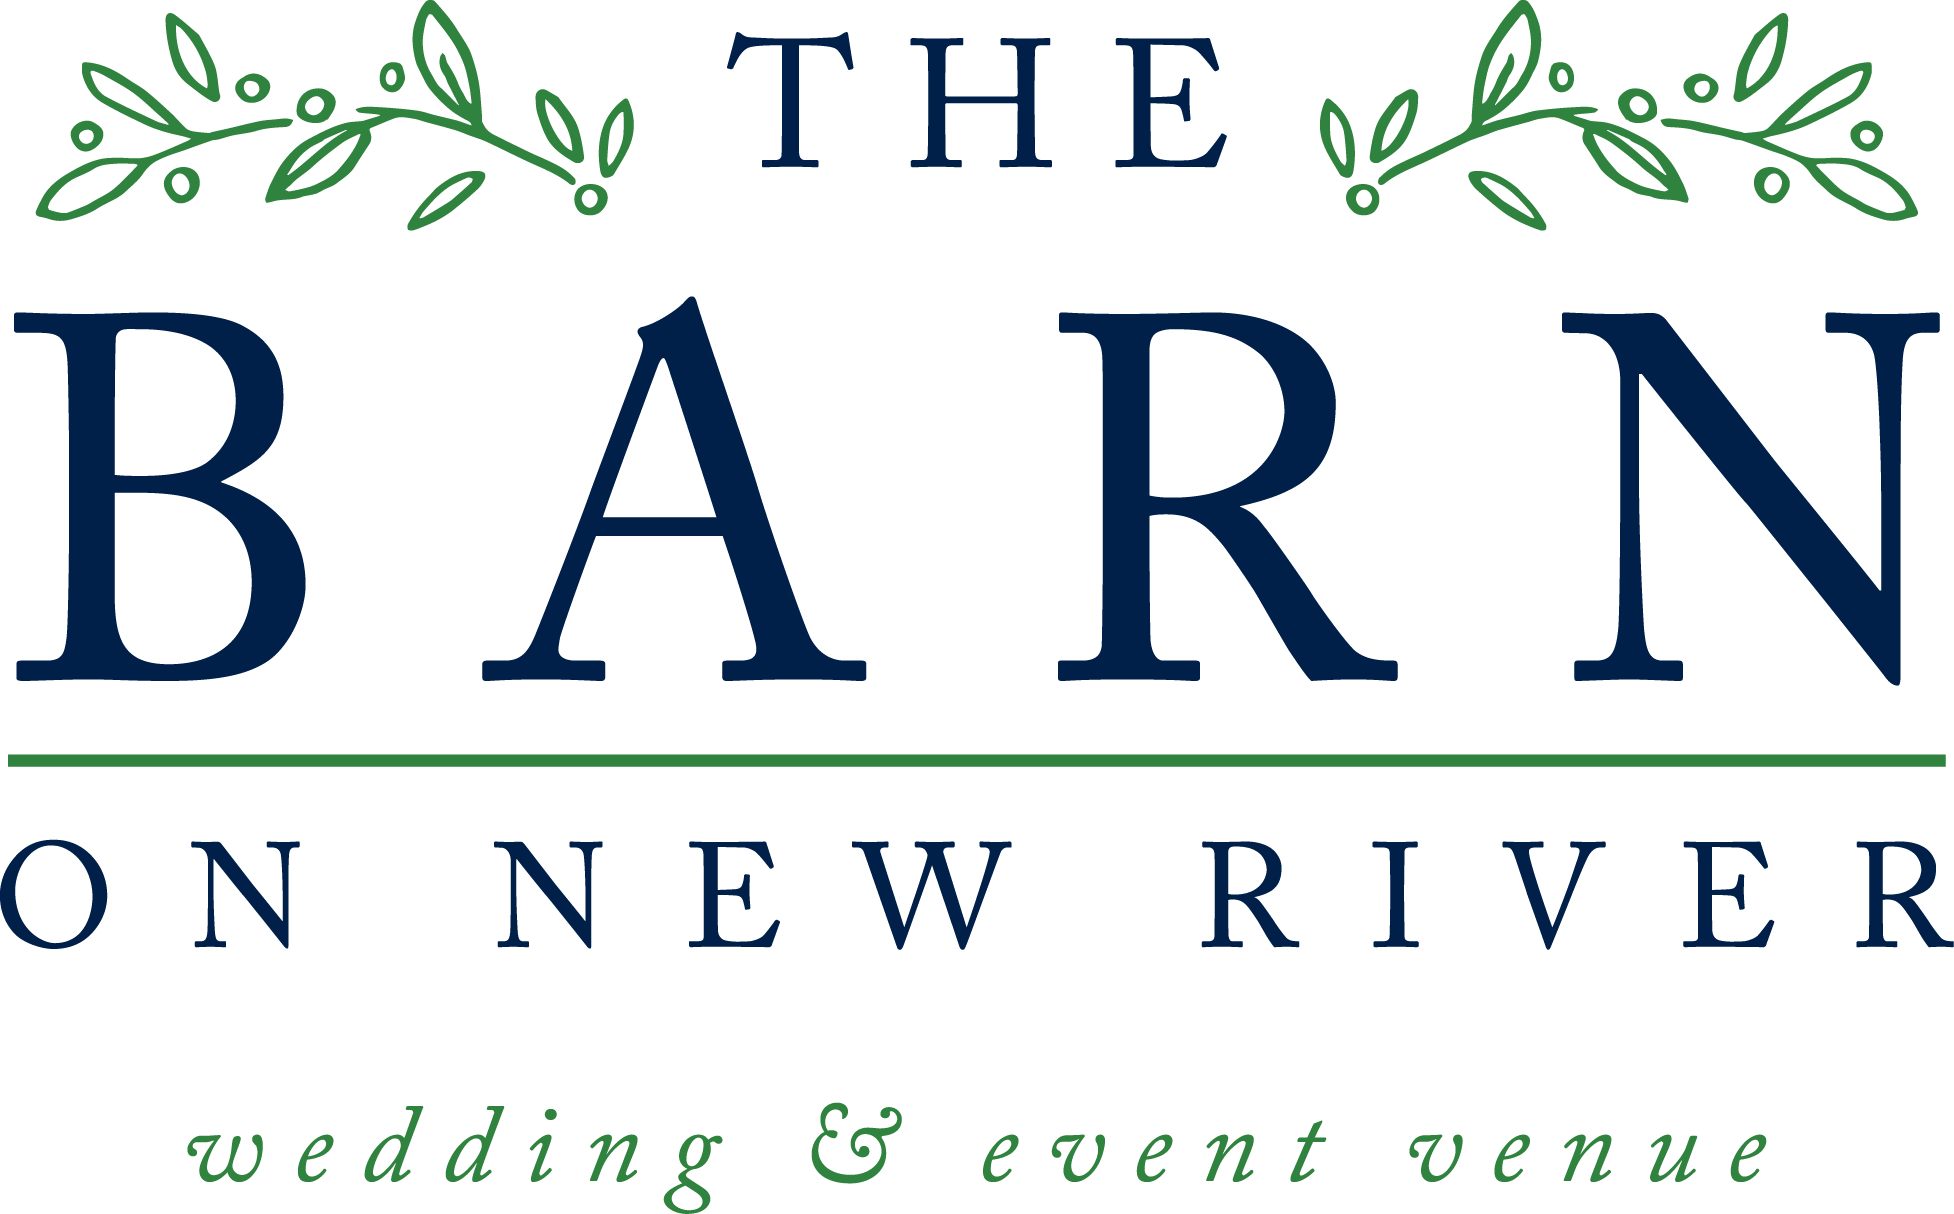 The Barn on New River_logo_FINAL.PNG